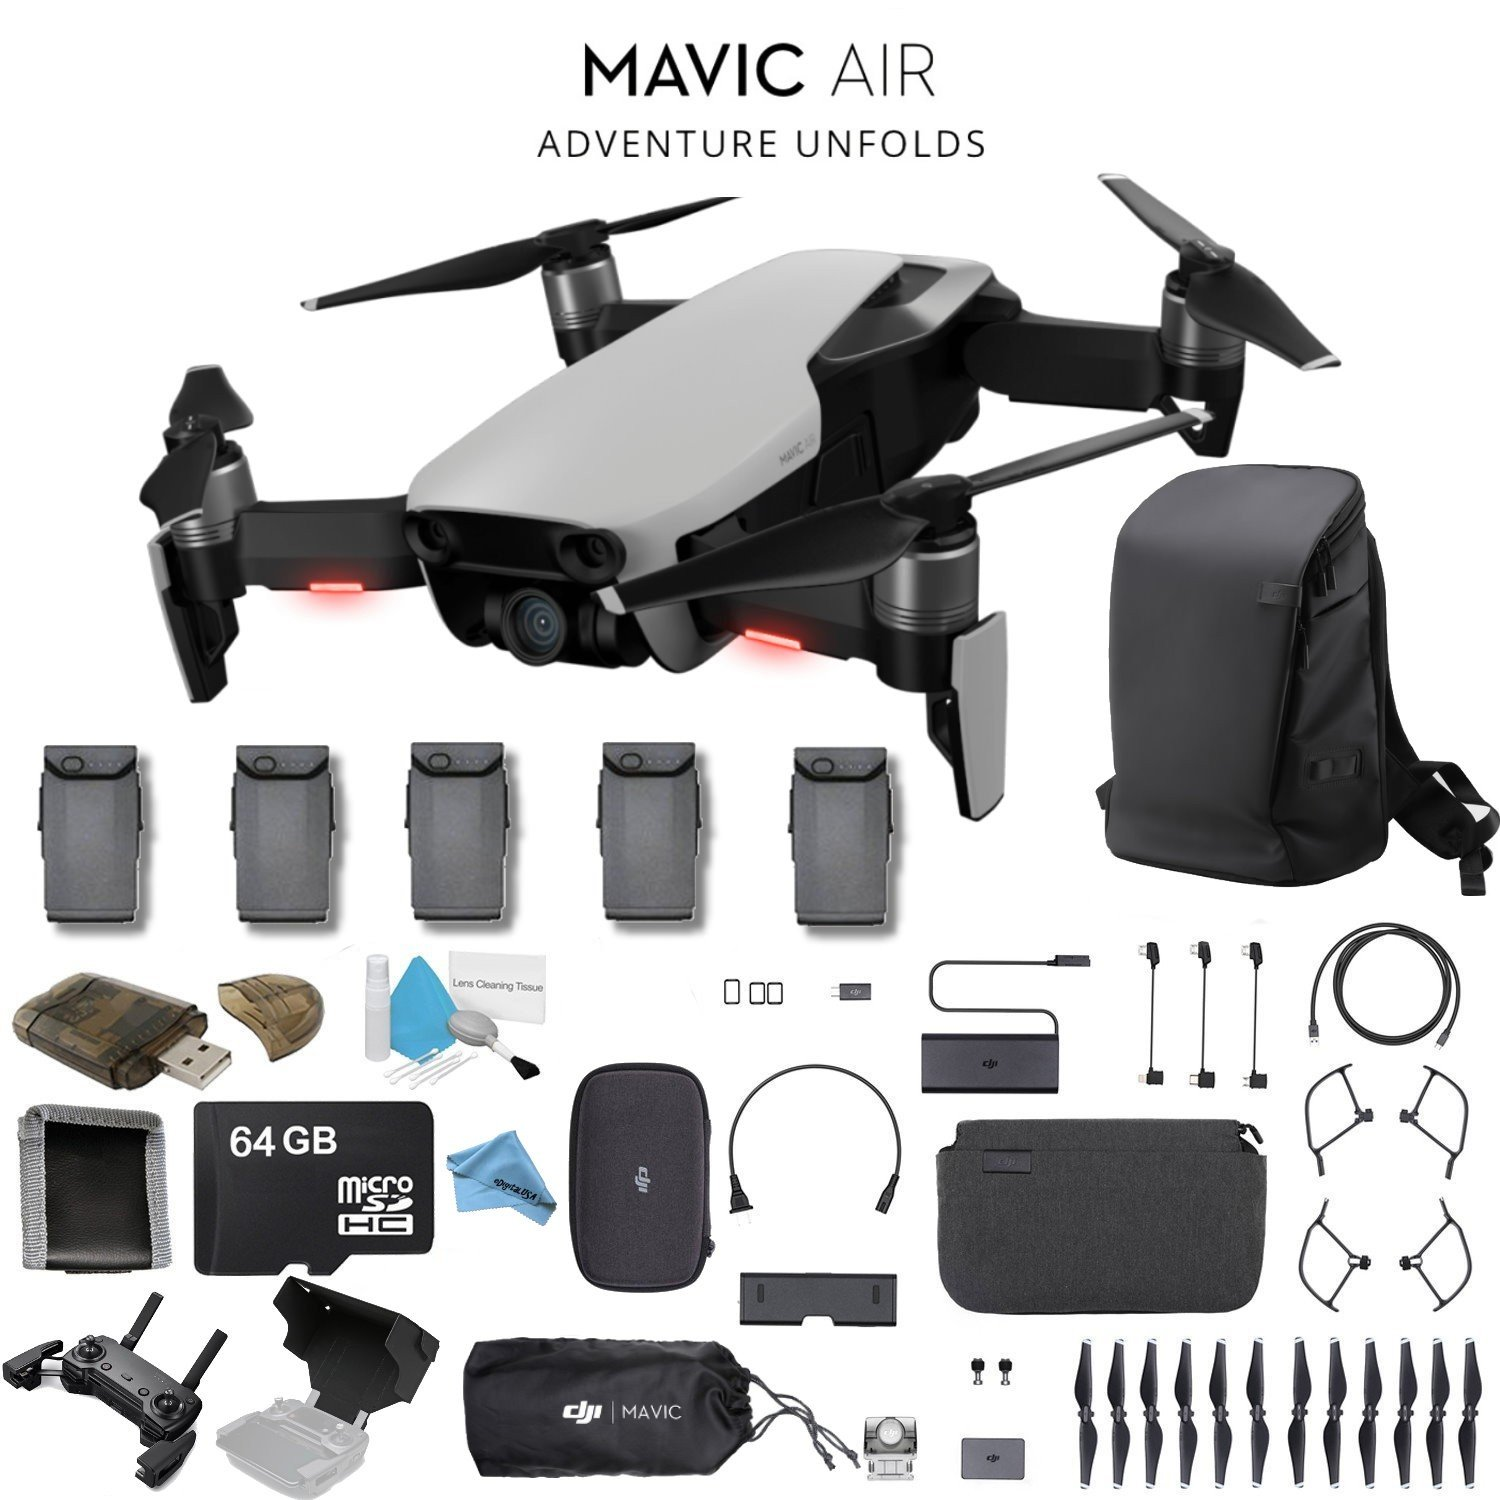 a3f511933ac DJI Mavic Air Fly More Combo (Arctic White) CP.PT.00000165.01 + 2 DJI  Intelligent Flight Battery for Mavic Air (5 Total) + Carrying Case and Much  More.